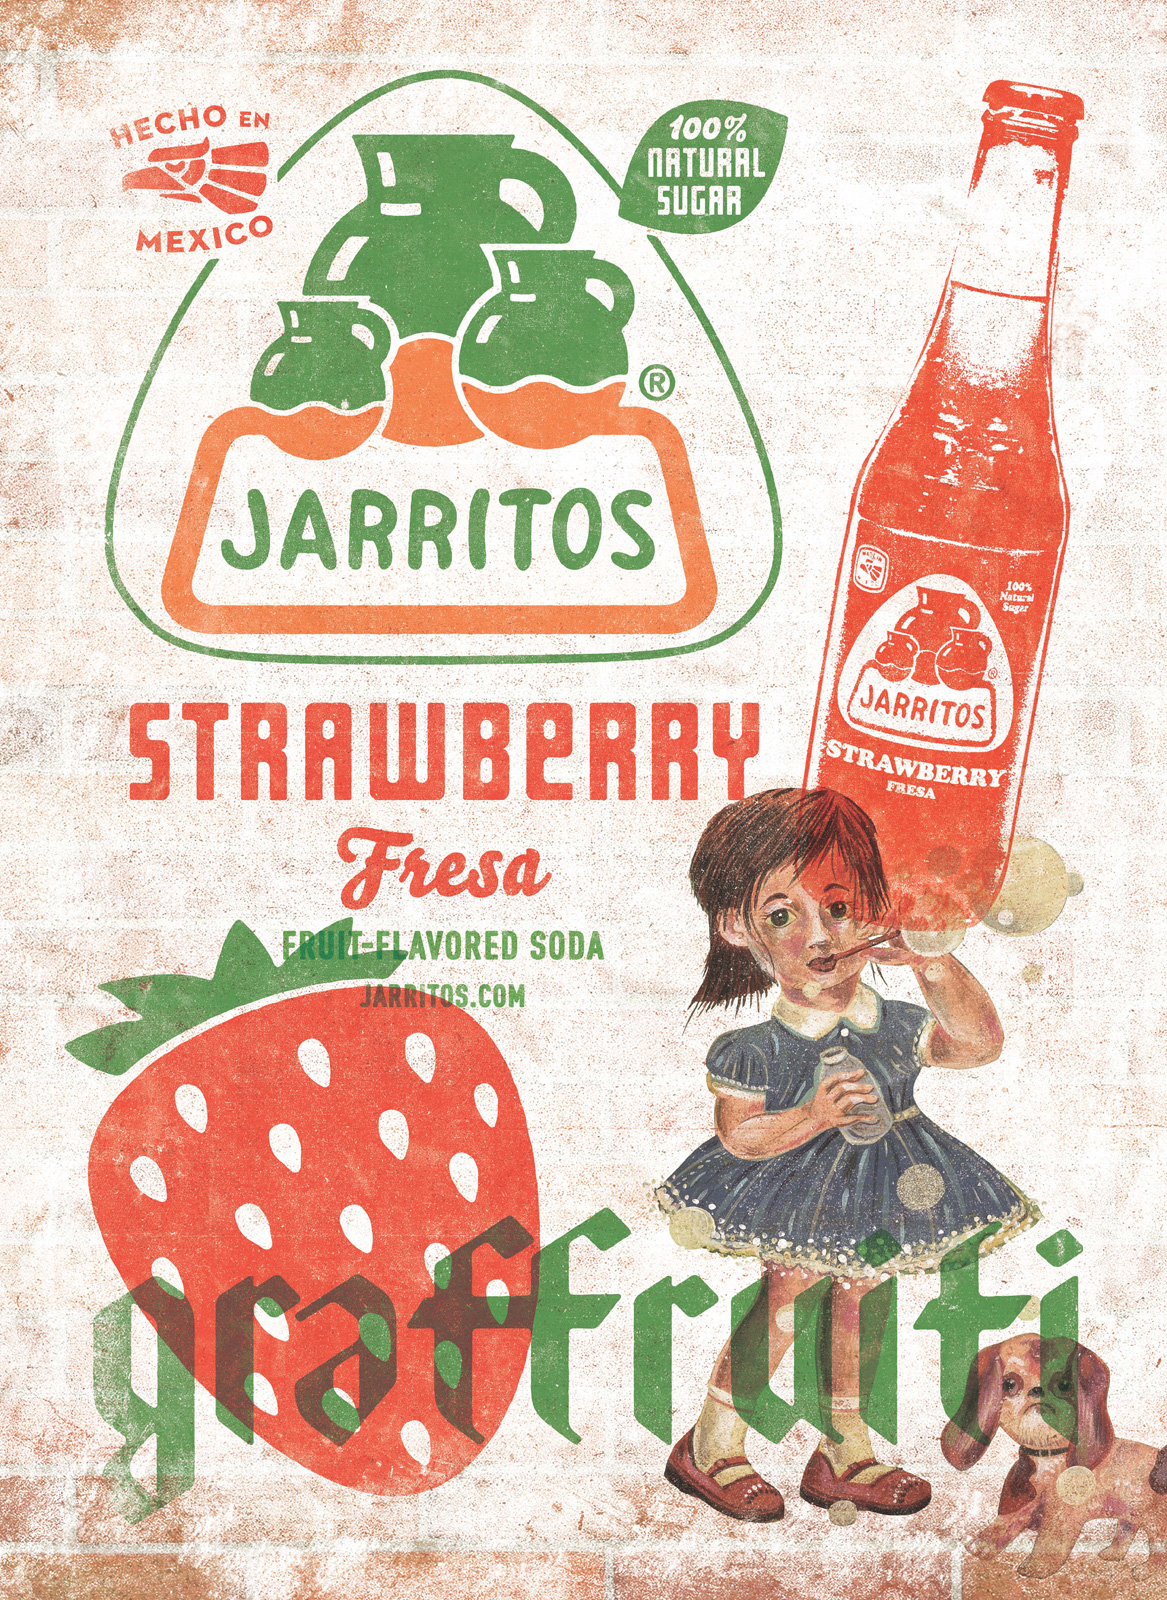 Jarritos fonts in use for Ahora mexican cuisine